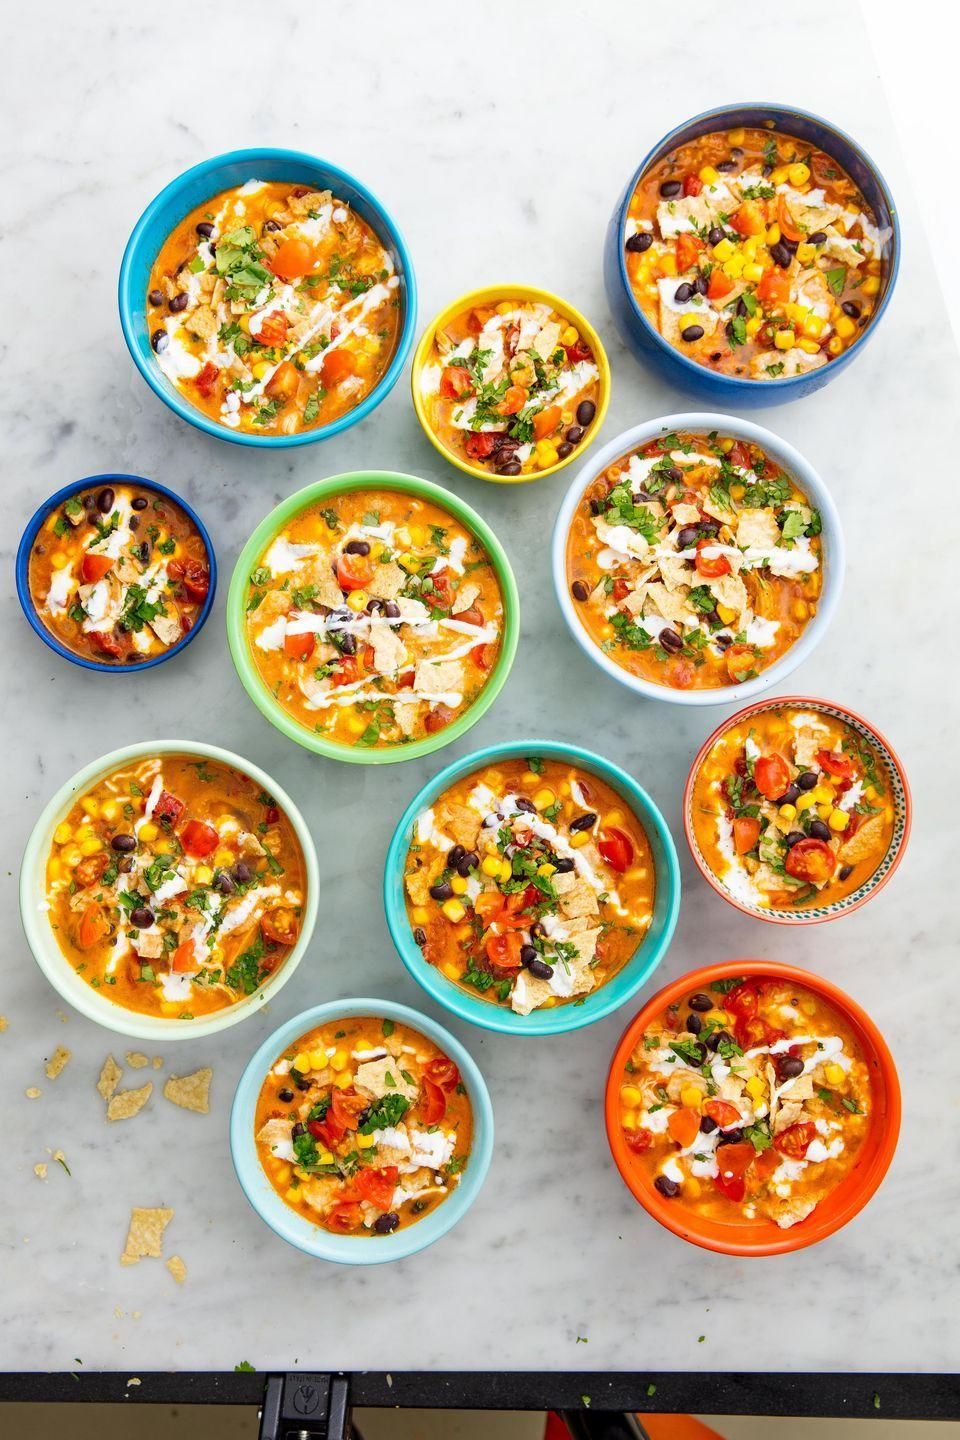 "<p>This is nacho average soup.</p><p>Get the recipe from <a href=""https://www.delish.com/cooking/recipe-ideas/recipes/a49378/nacho-soup-recipe/"" rel=""nofollow noopener"" target=""_blank"" data-ylk=""slk:Delish"" class=""link rapid-noclick-resp"">Delish</a>.</p>"